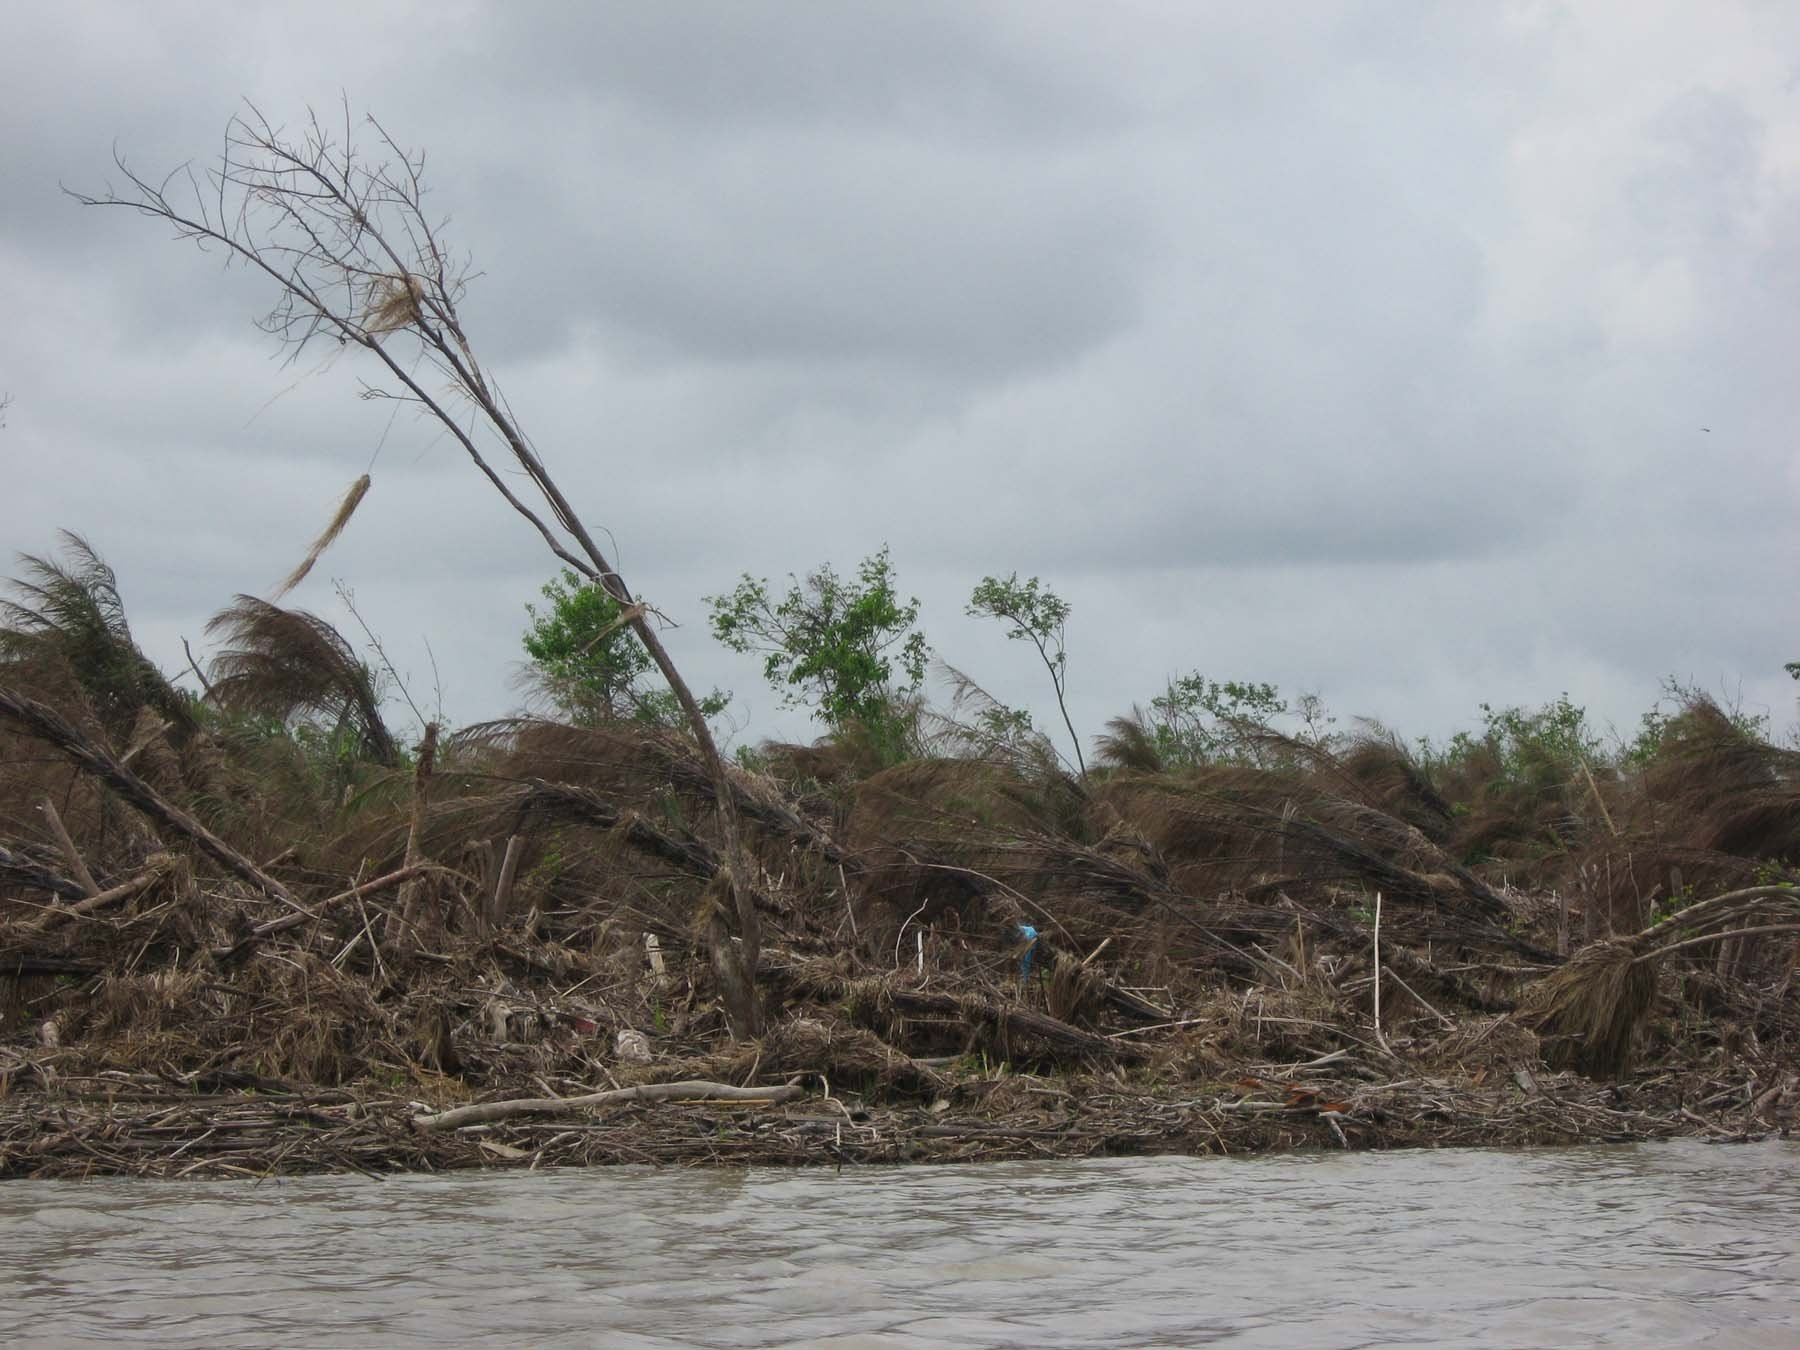 Scene of mangrove forest on Mainmahla Island in Bogale Township after Cyclone Nargis